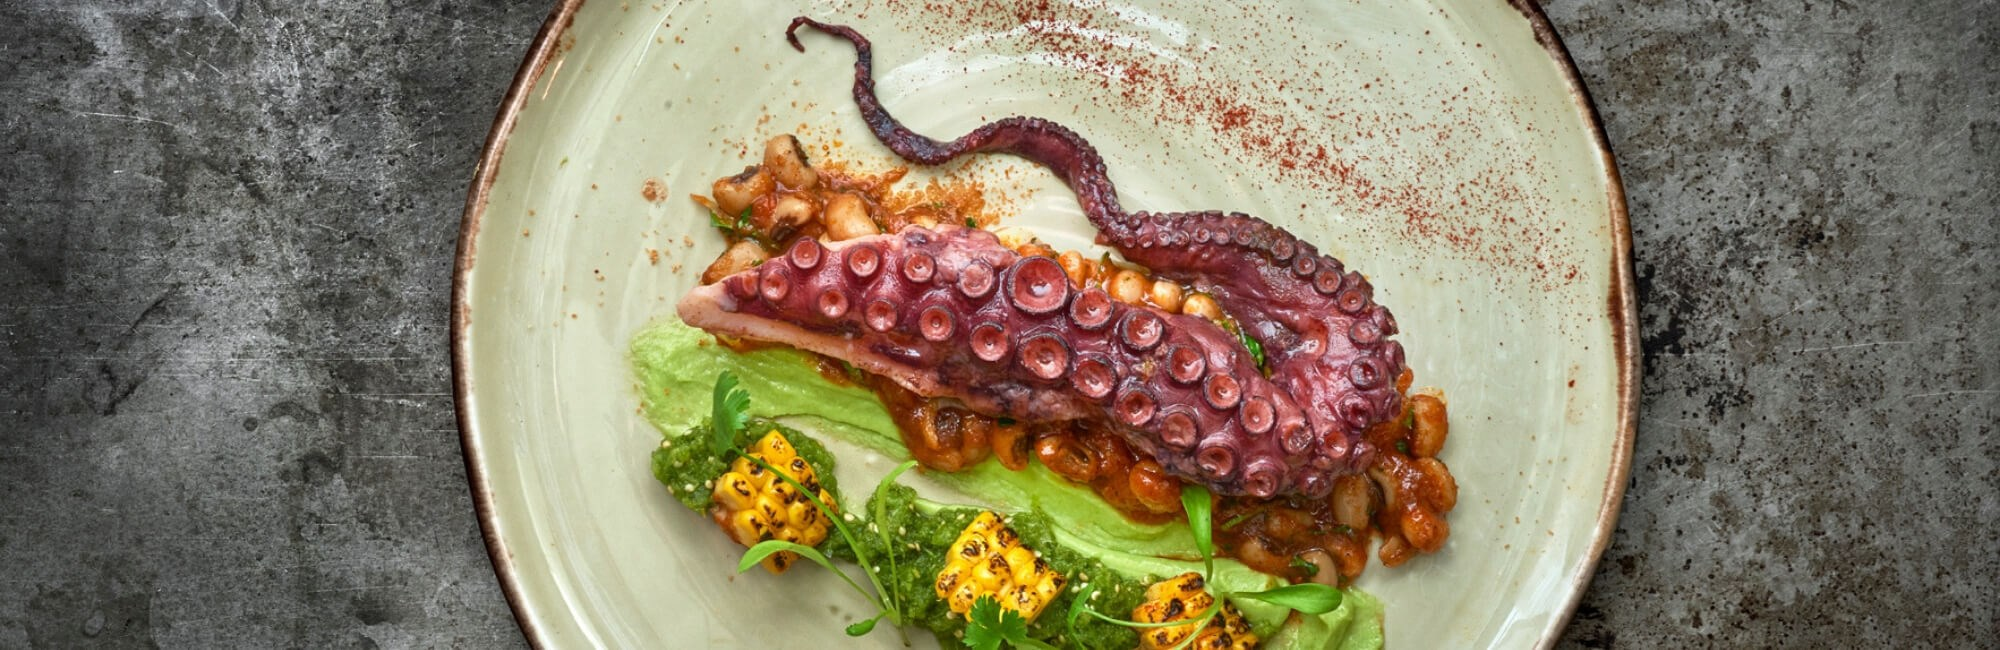 Grilled Octopus at 34 Mayfair, Restaurant in Mayfair